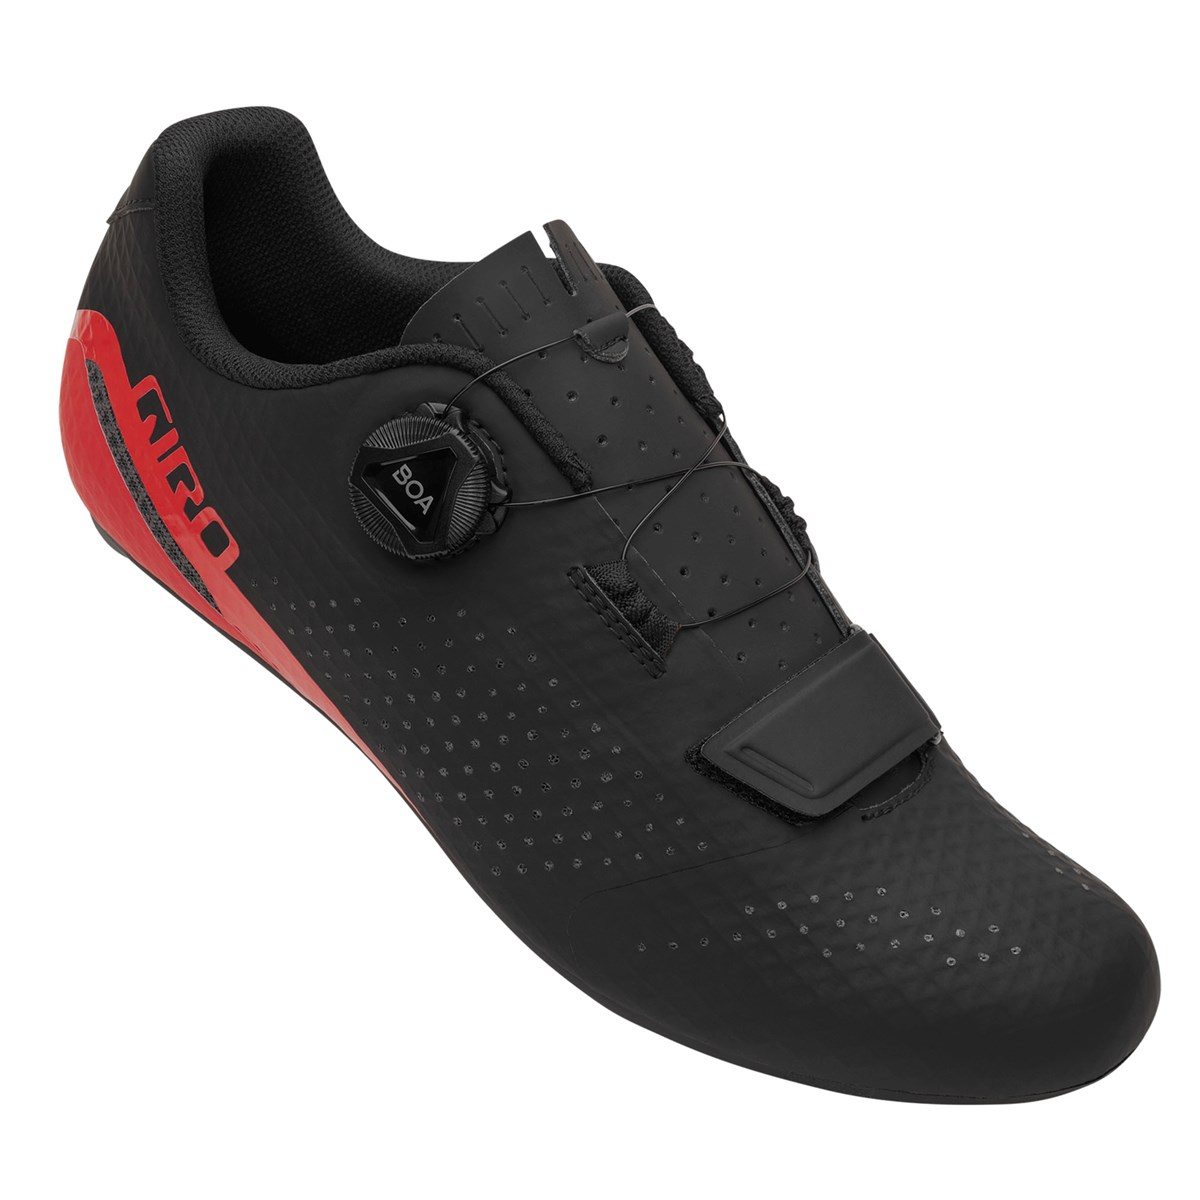 Cadet Road Cycling Shoes